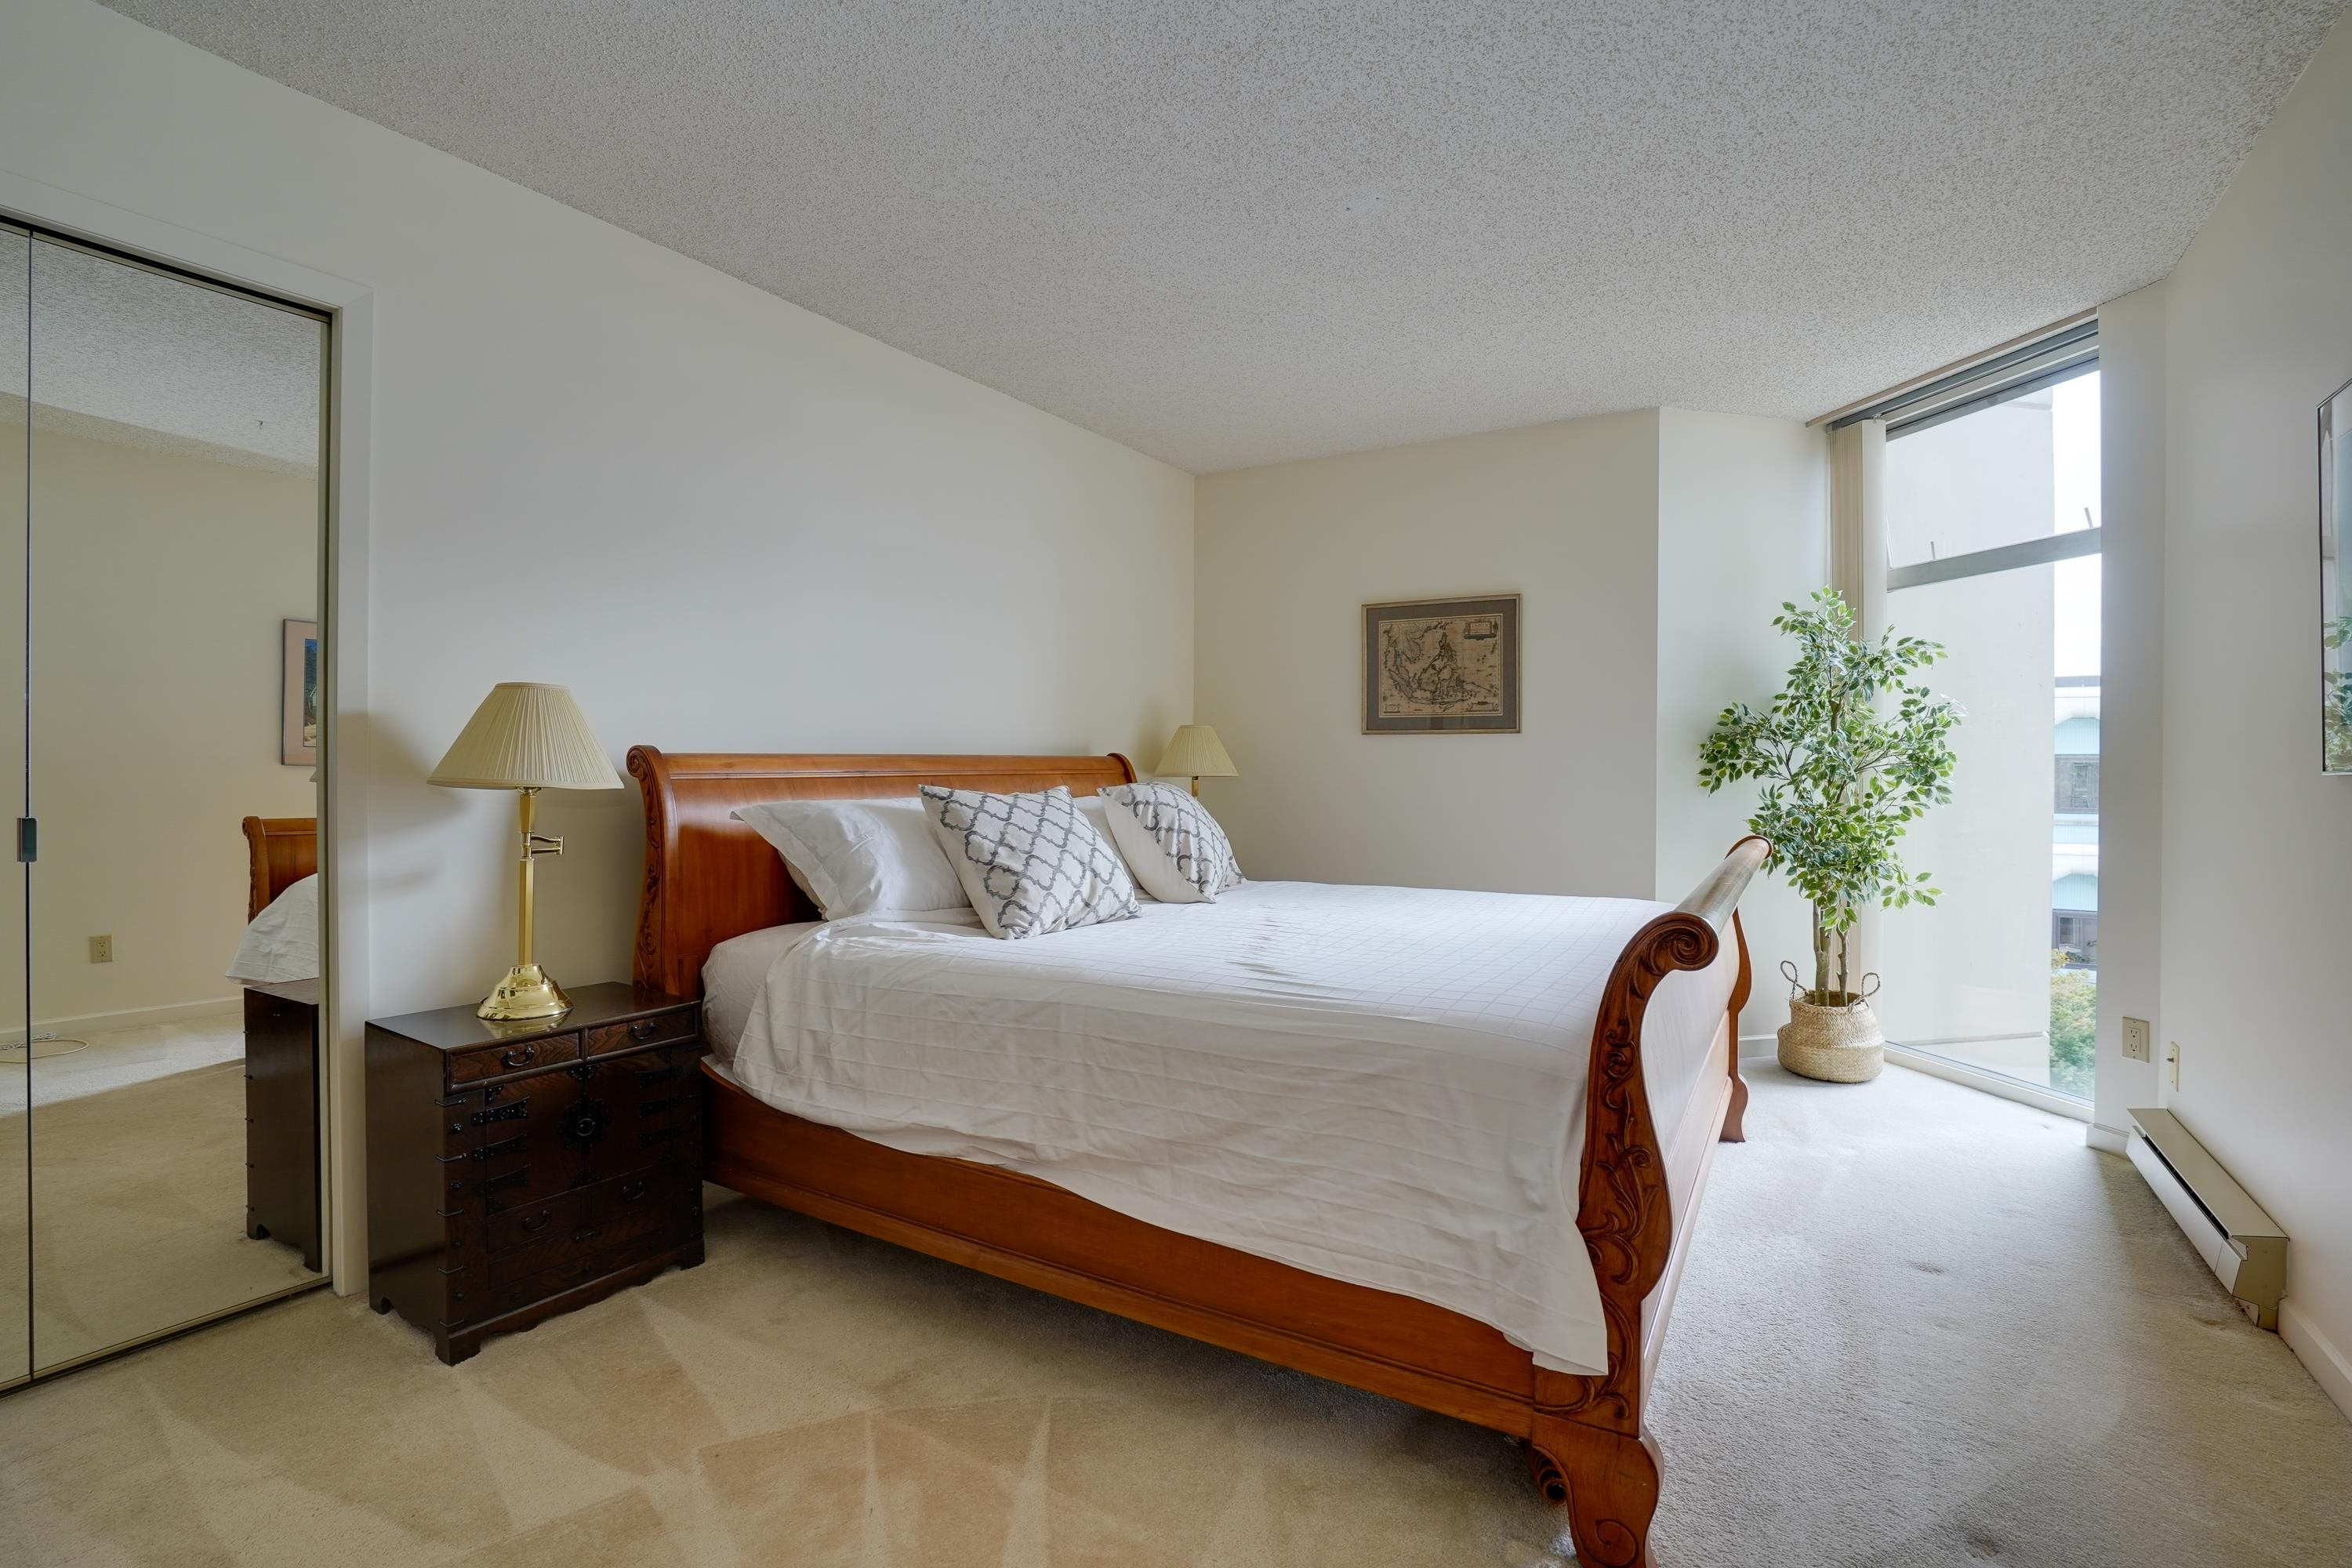 405 168 CHADWICK COURT - Lower Lonsdale Apartment/Condo for sale, 3 Bedrooms (R2619951) - #18